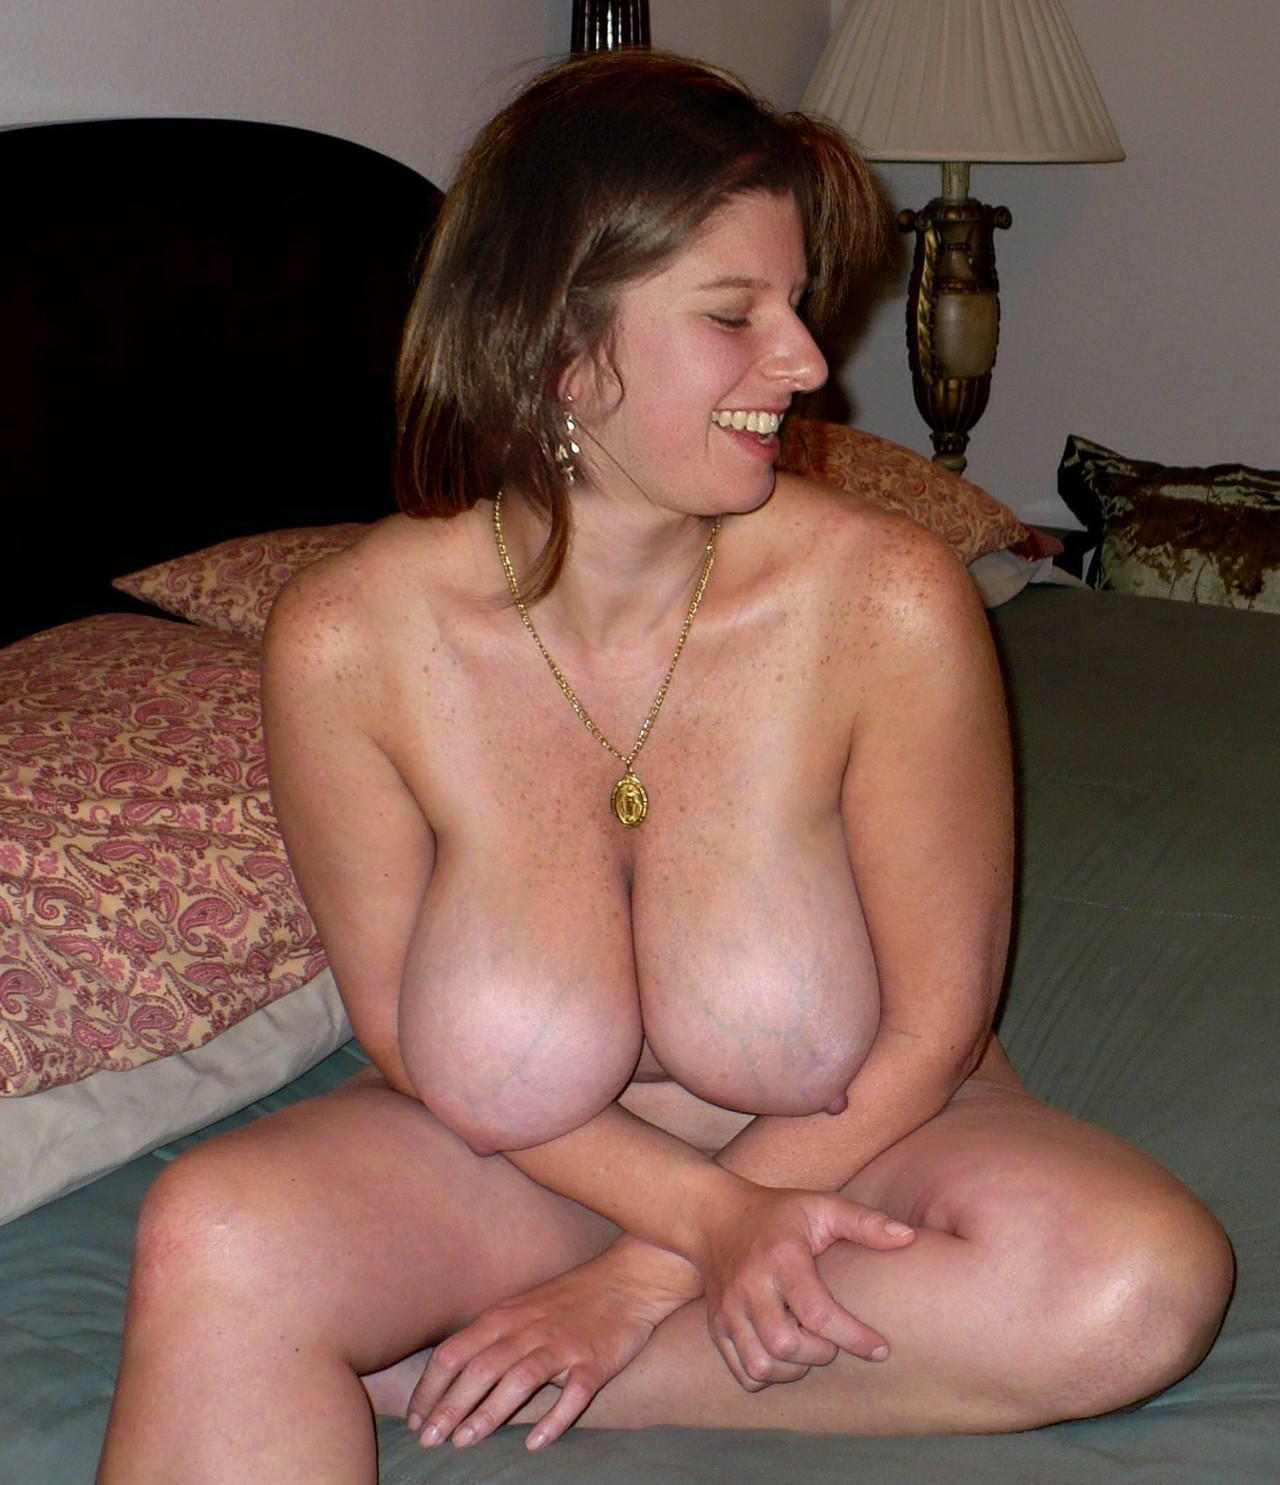 amateurs showing their tits